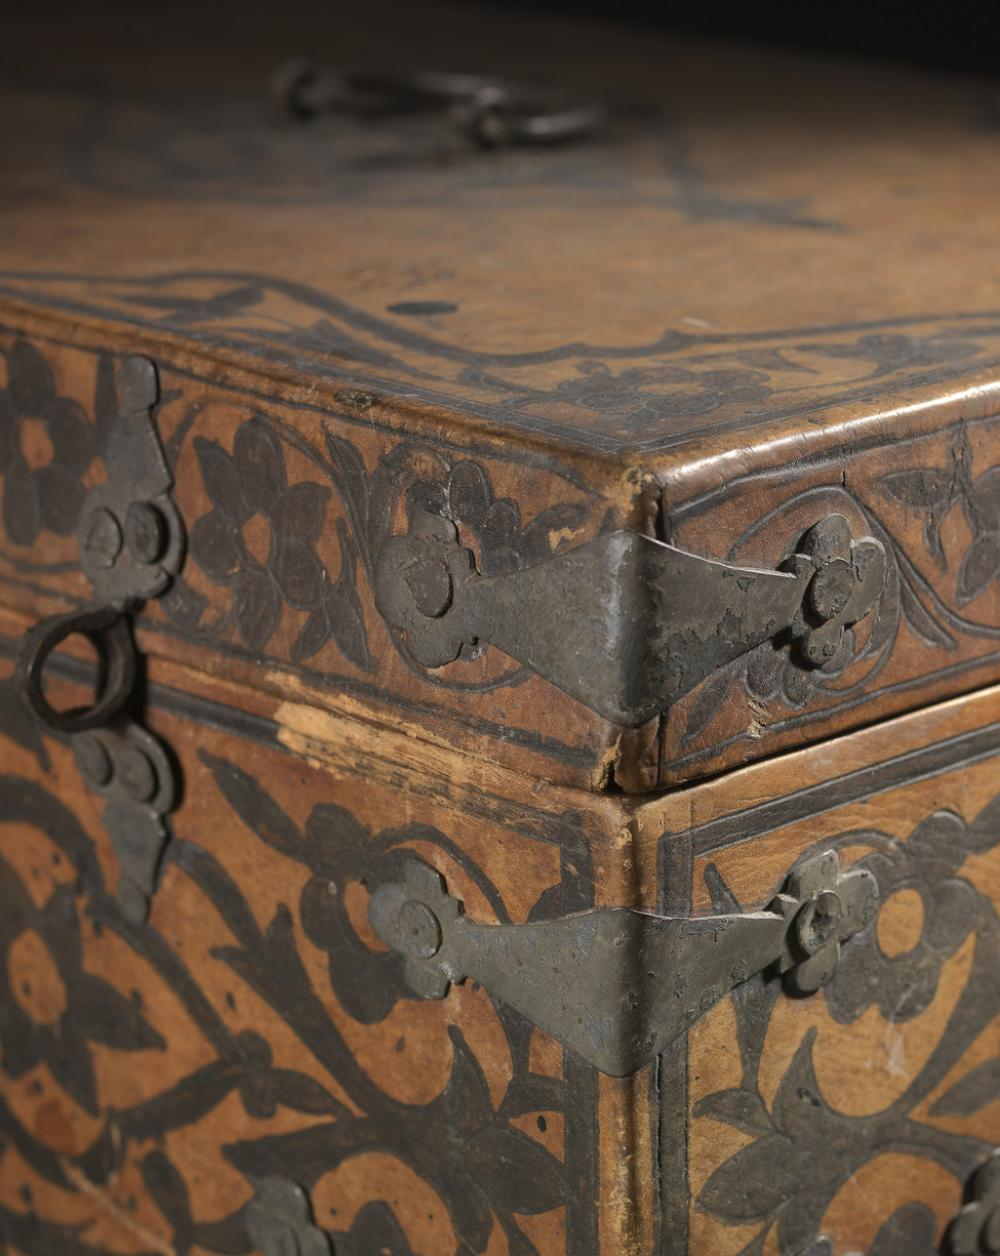 Unknown, Fidelia Fiske's document box, mid 19th century, wood, leather, iron, and paper